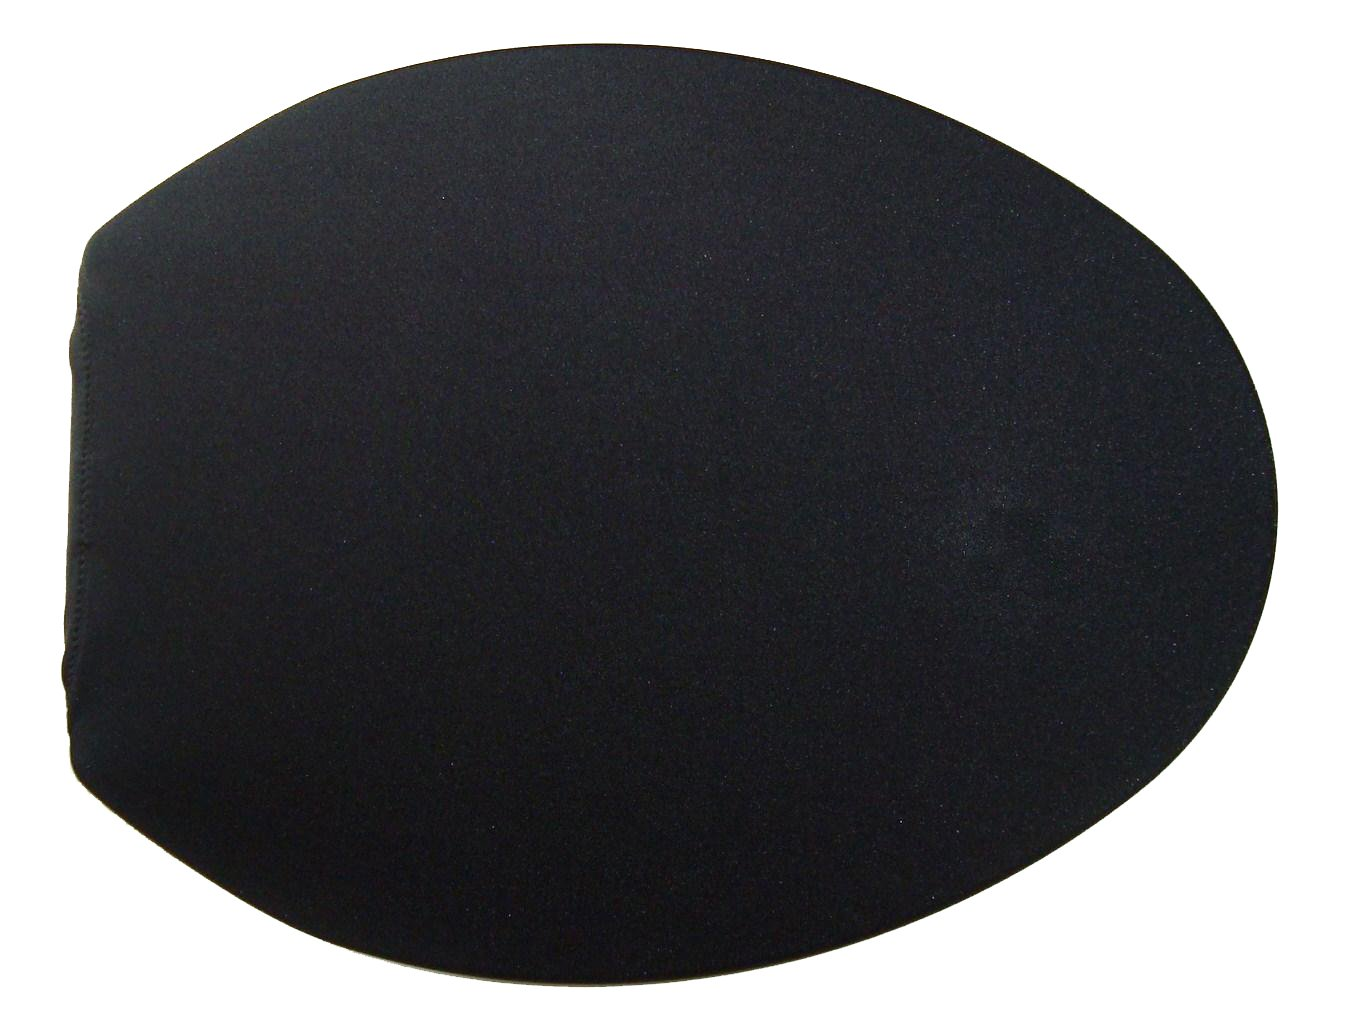 Spandex Fabric Cover for a lid Toilet SEAT fits on Round & Elongated Models - Handmade in USA (Black) by NCC New Concept Cover